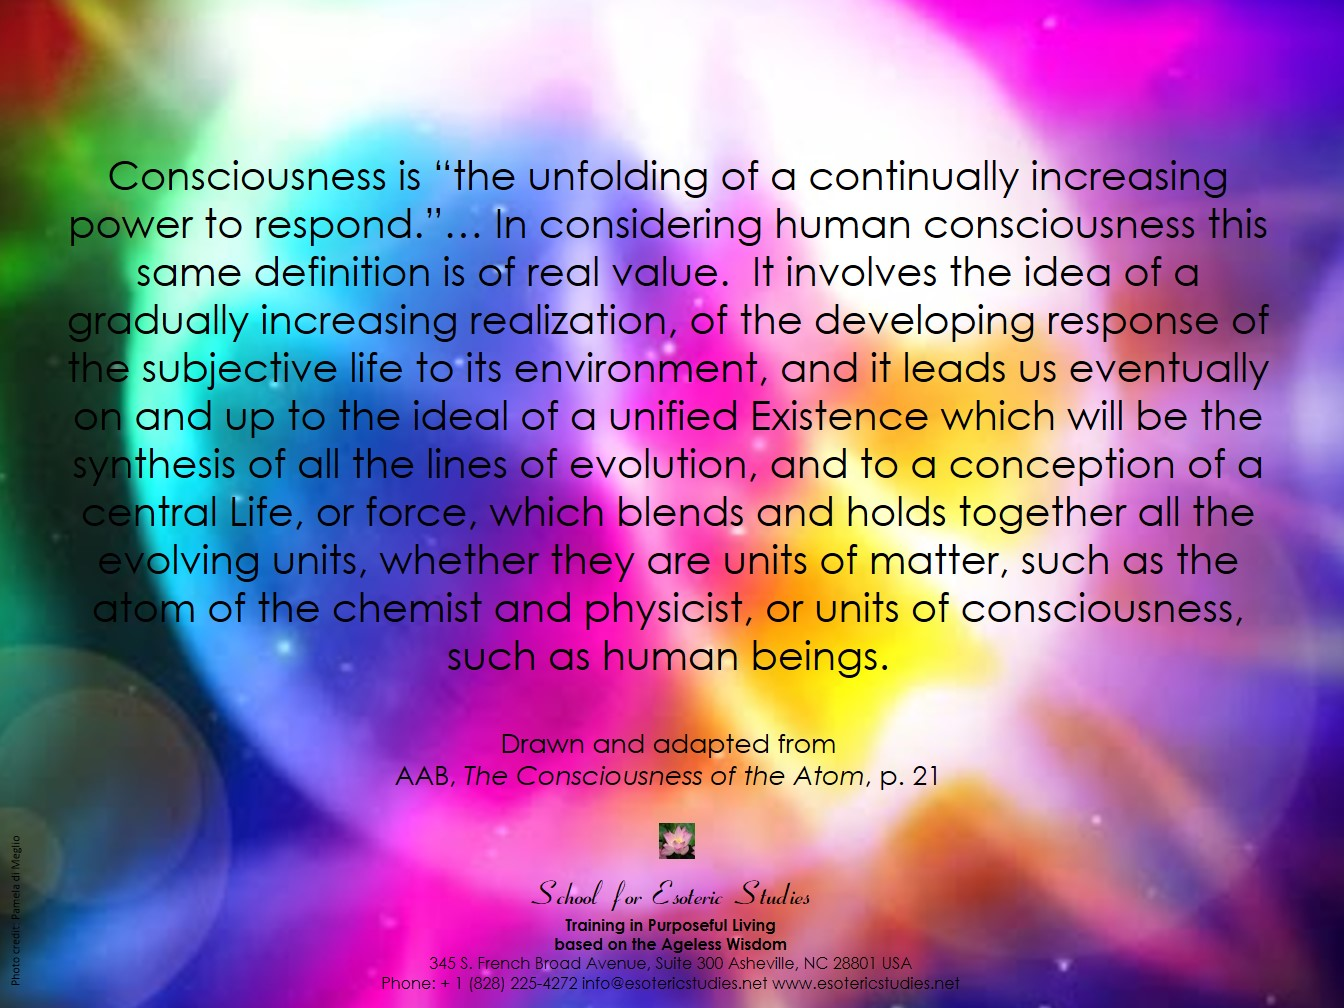 Quote about consciousness